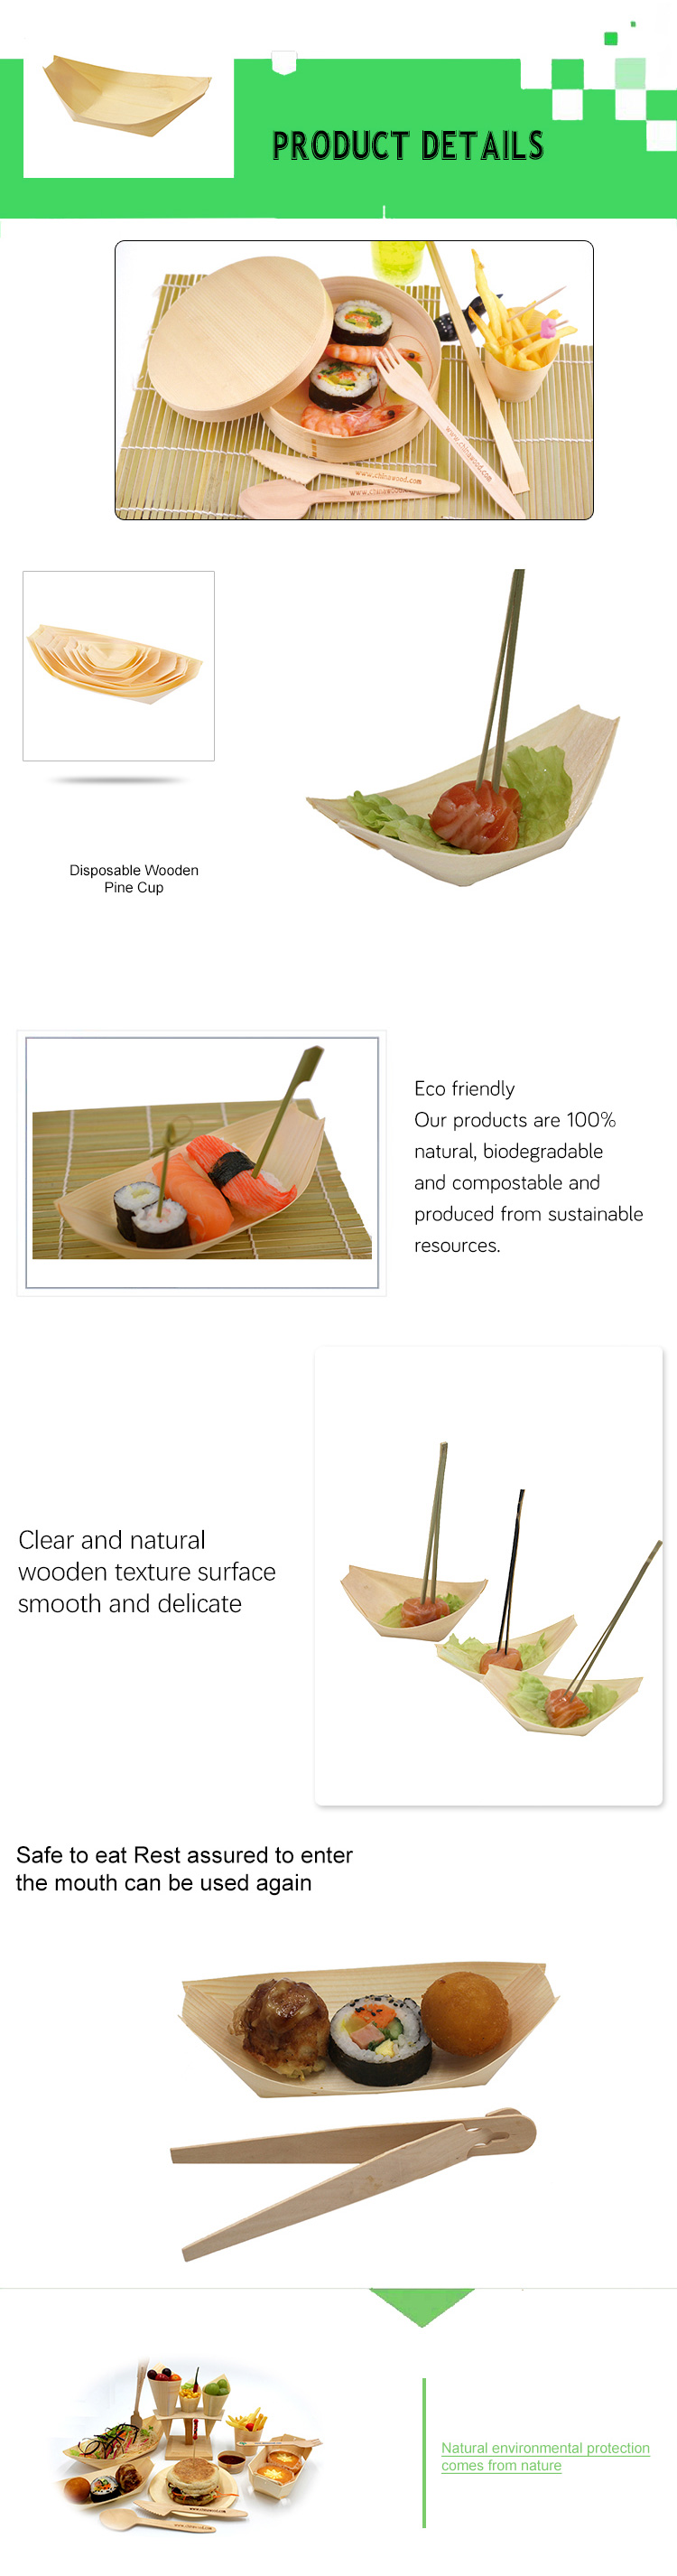 Chind disposable Pine Wooden Boat Plate